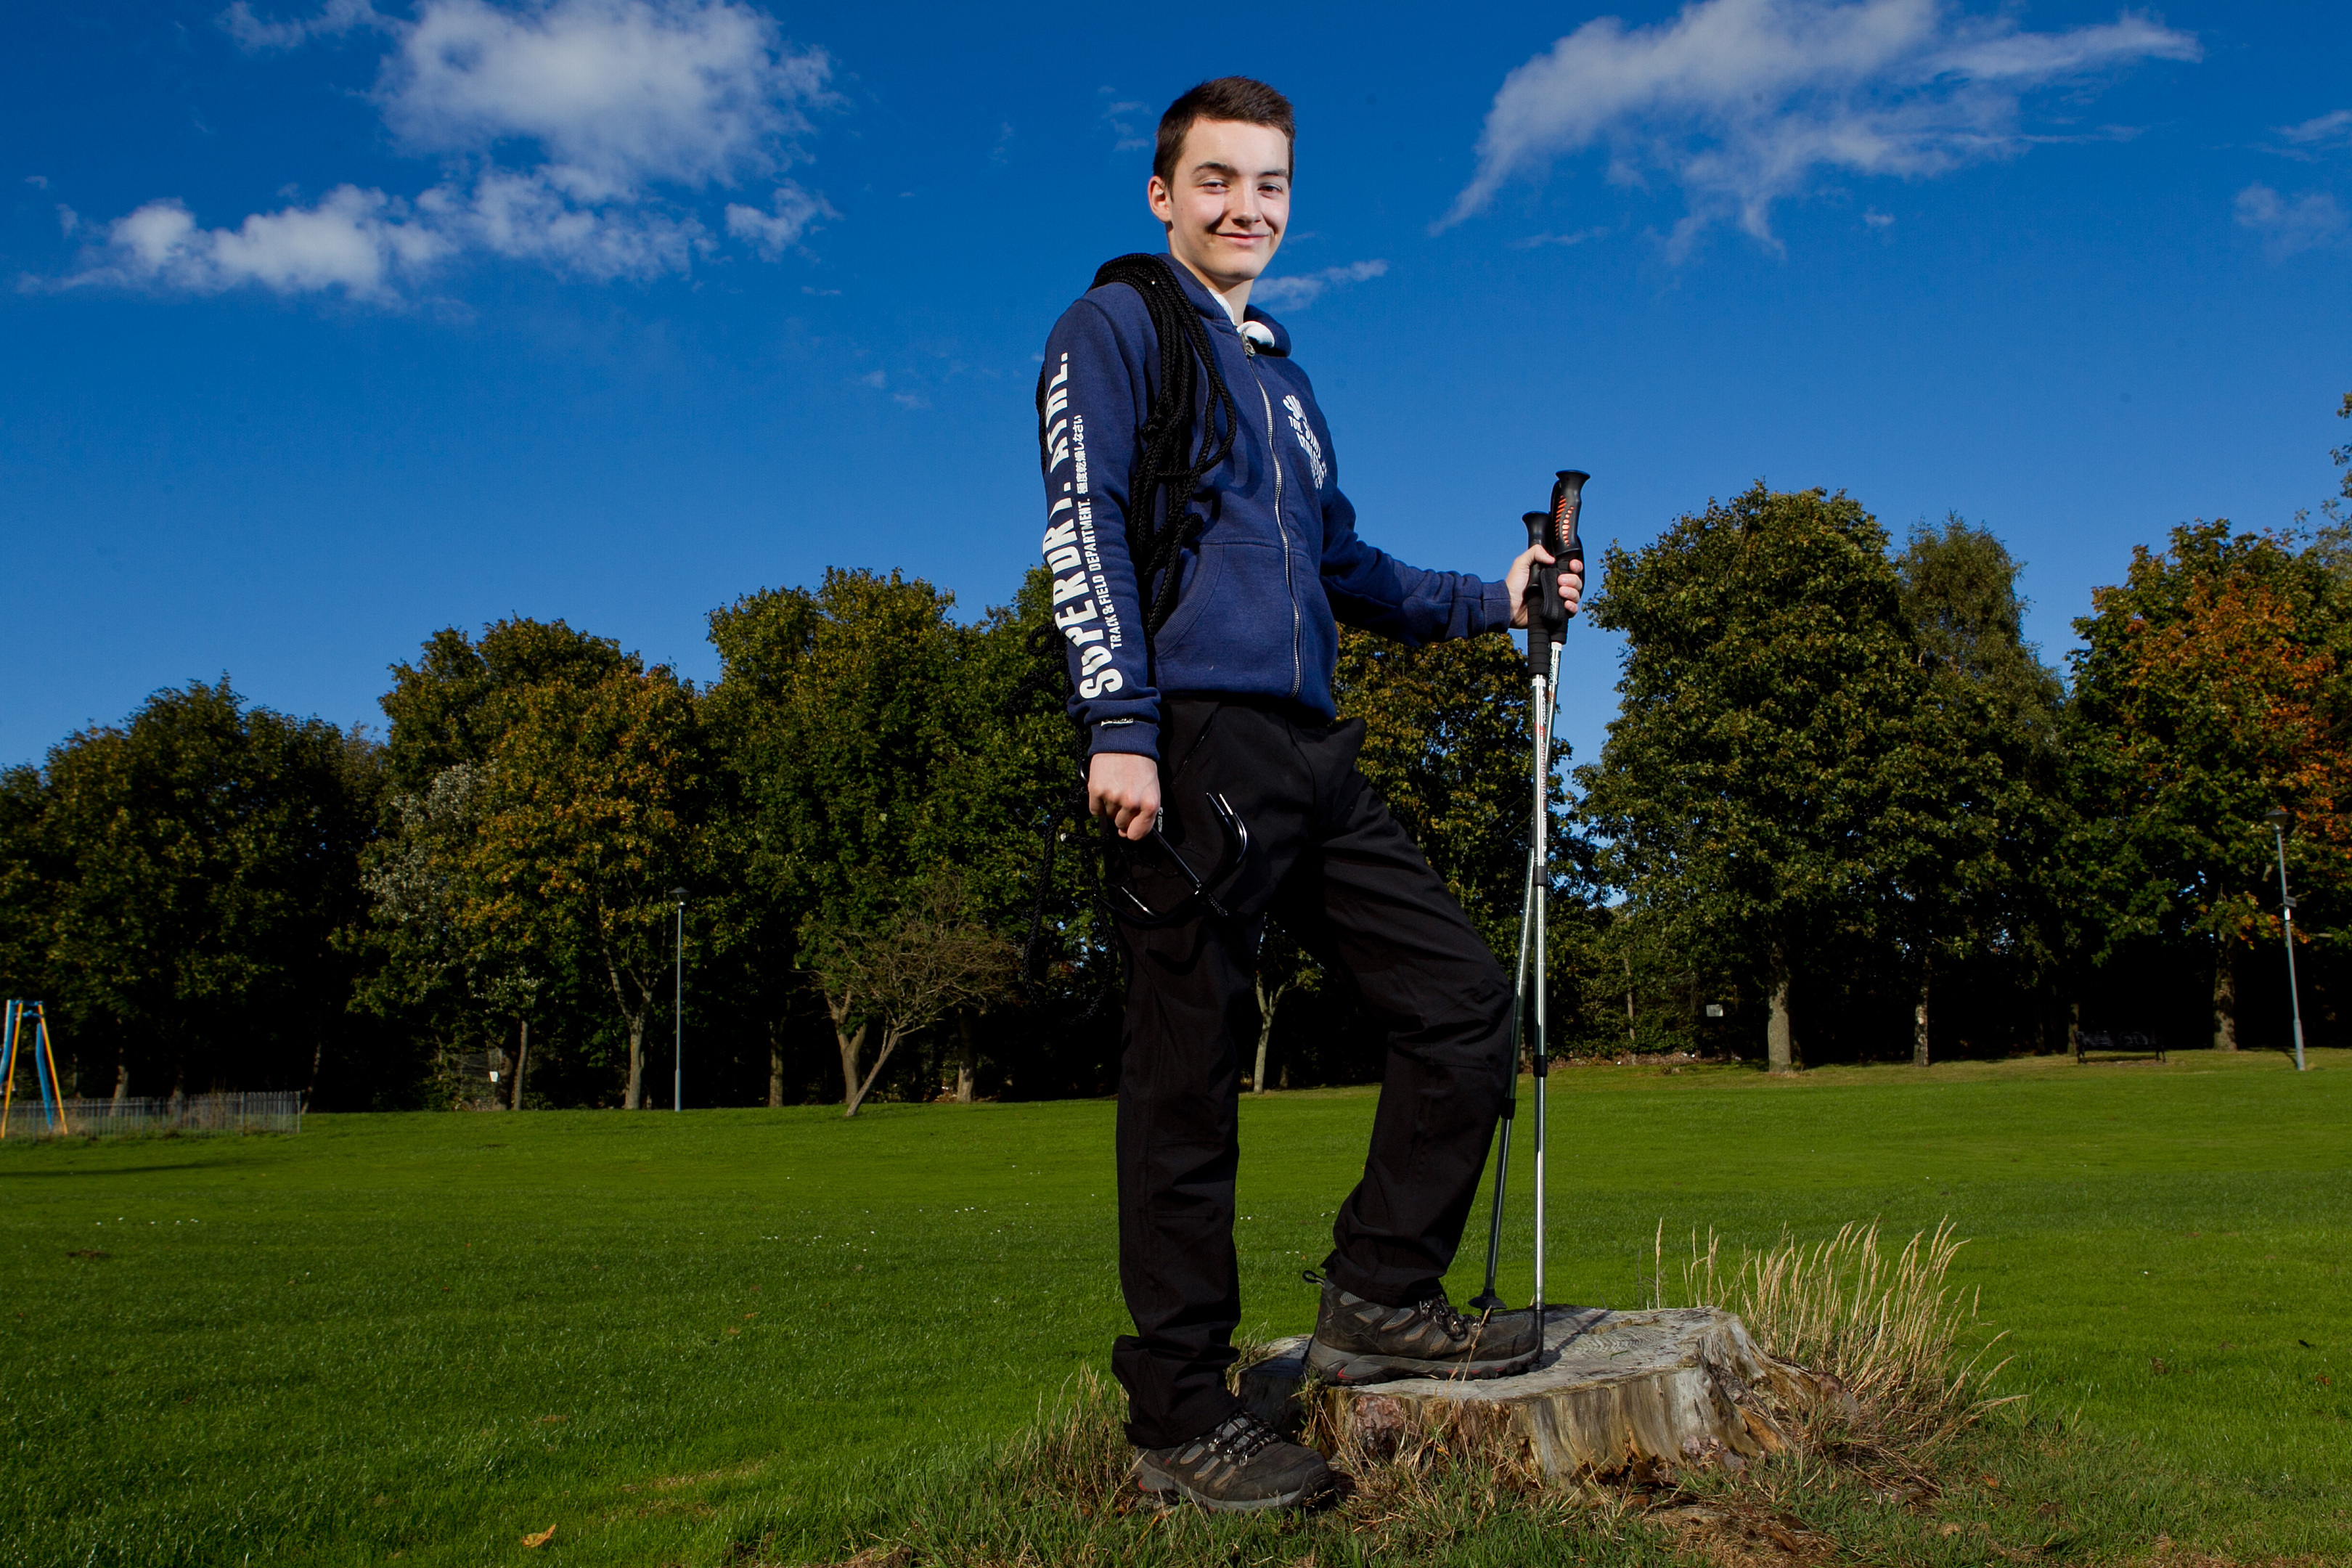 15 year old Ryan Hume who is planning to climb Mount Everest (Andrew Cawley/DC Thomson)